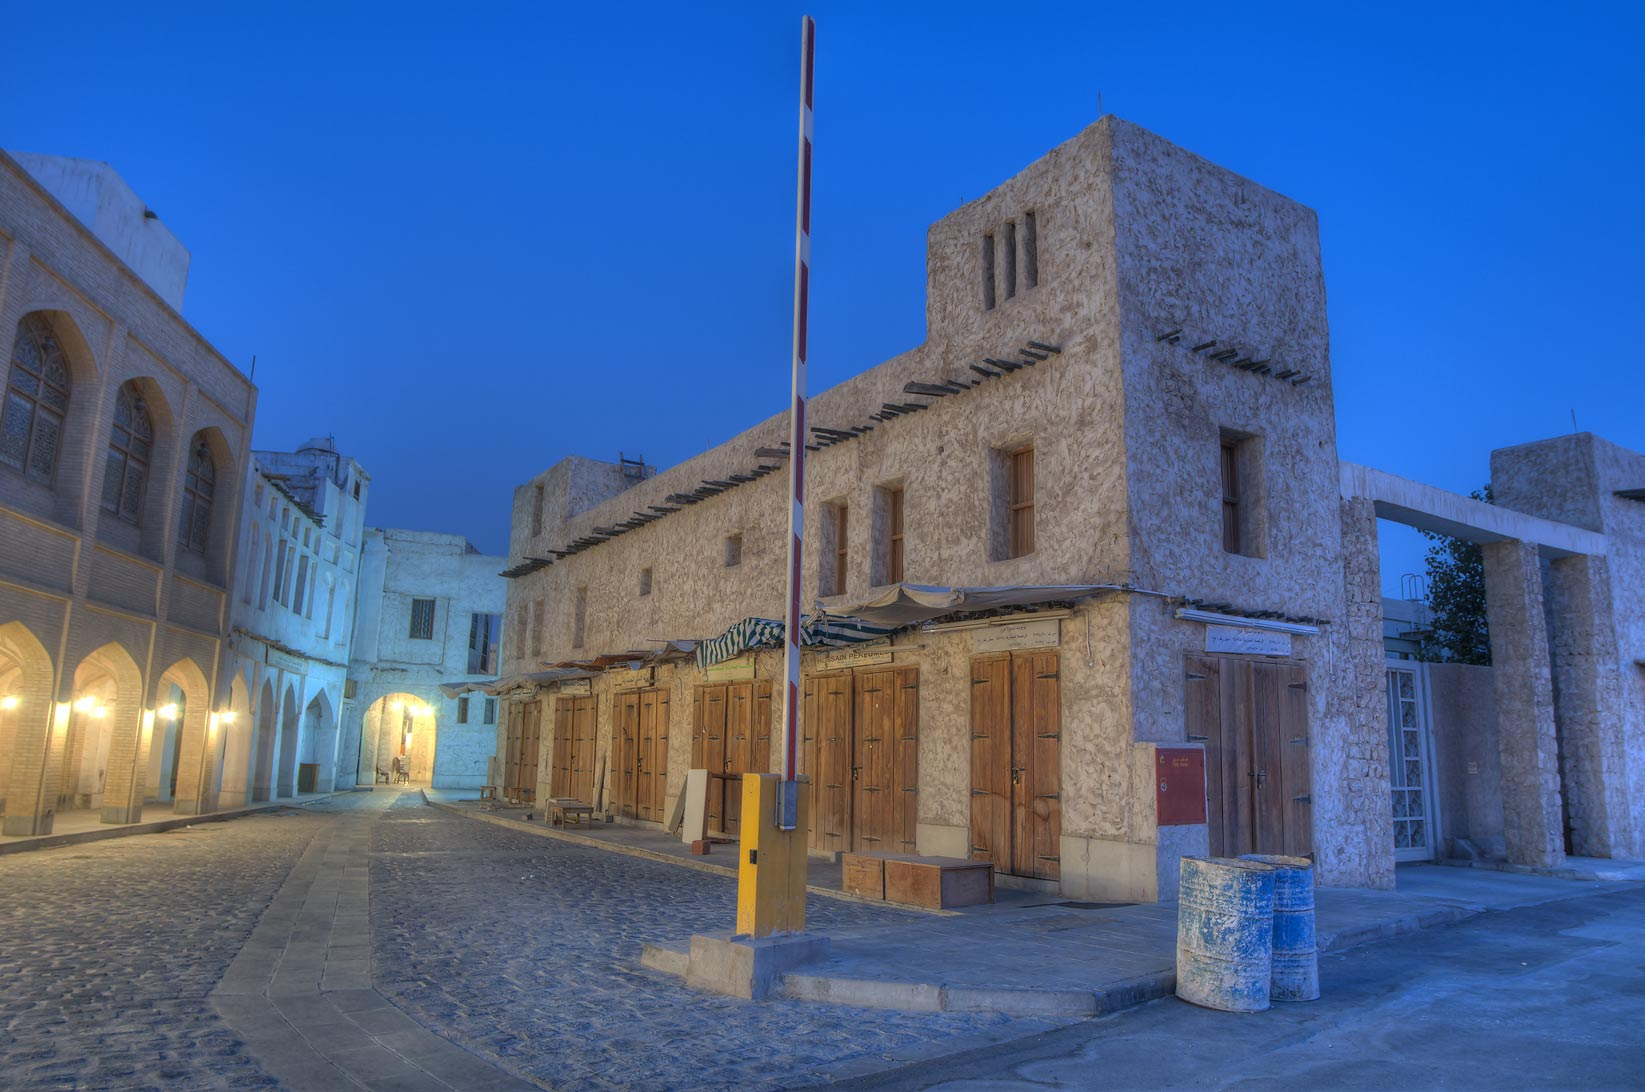 Corner of alleys in Souq Waqif (Old Market) at morning. Doha, Qatar